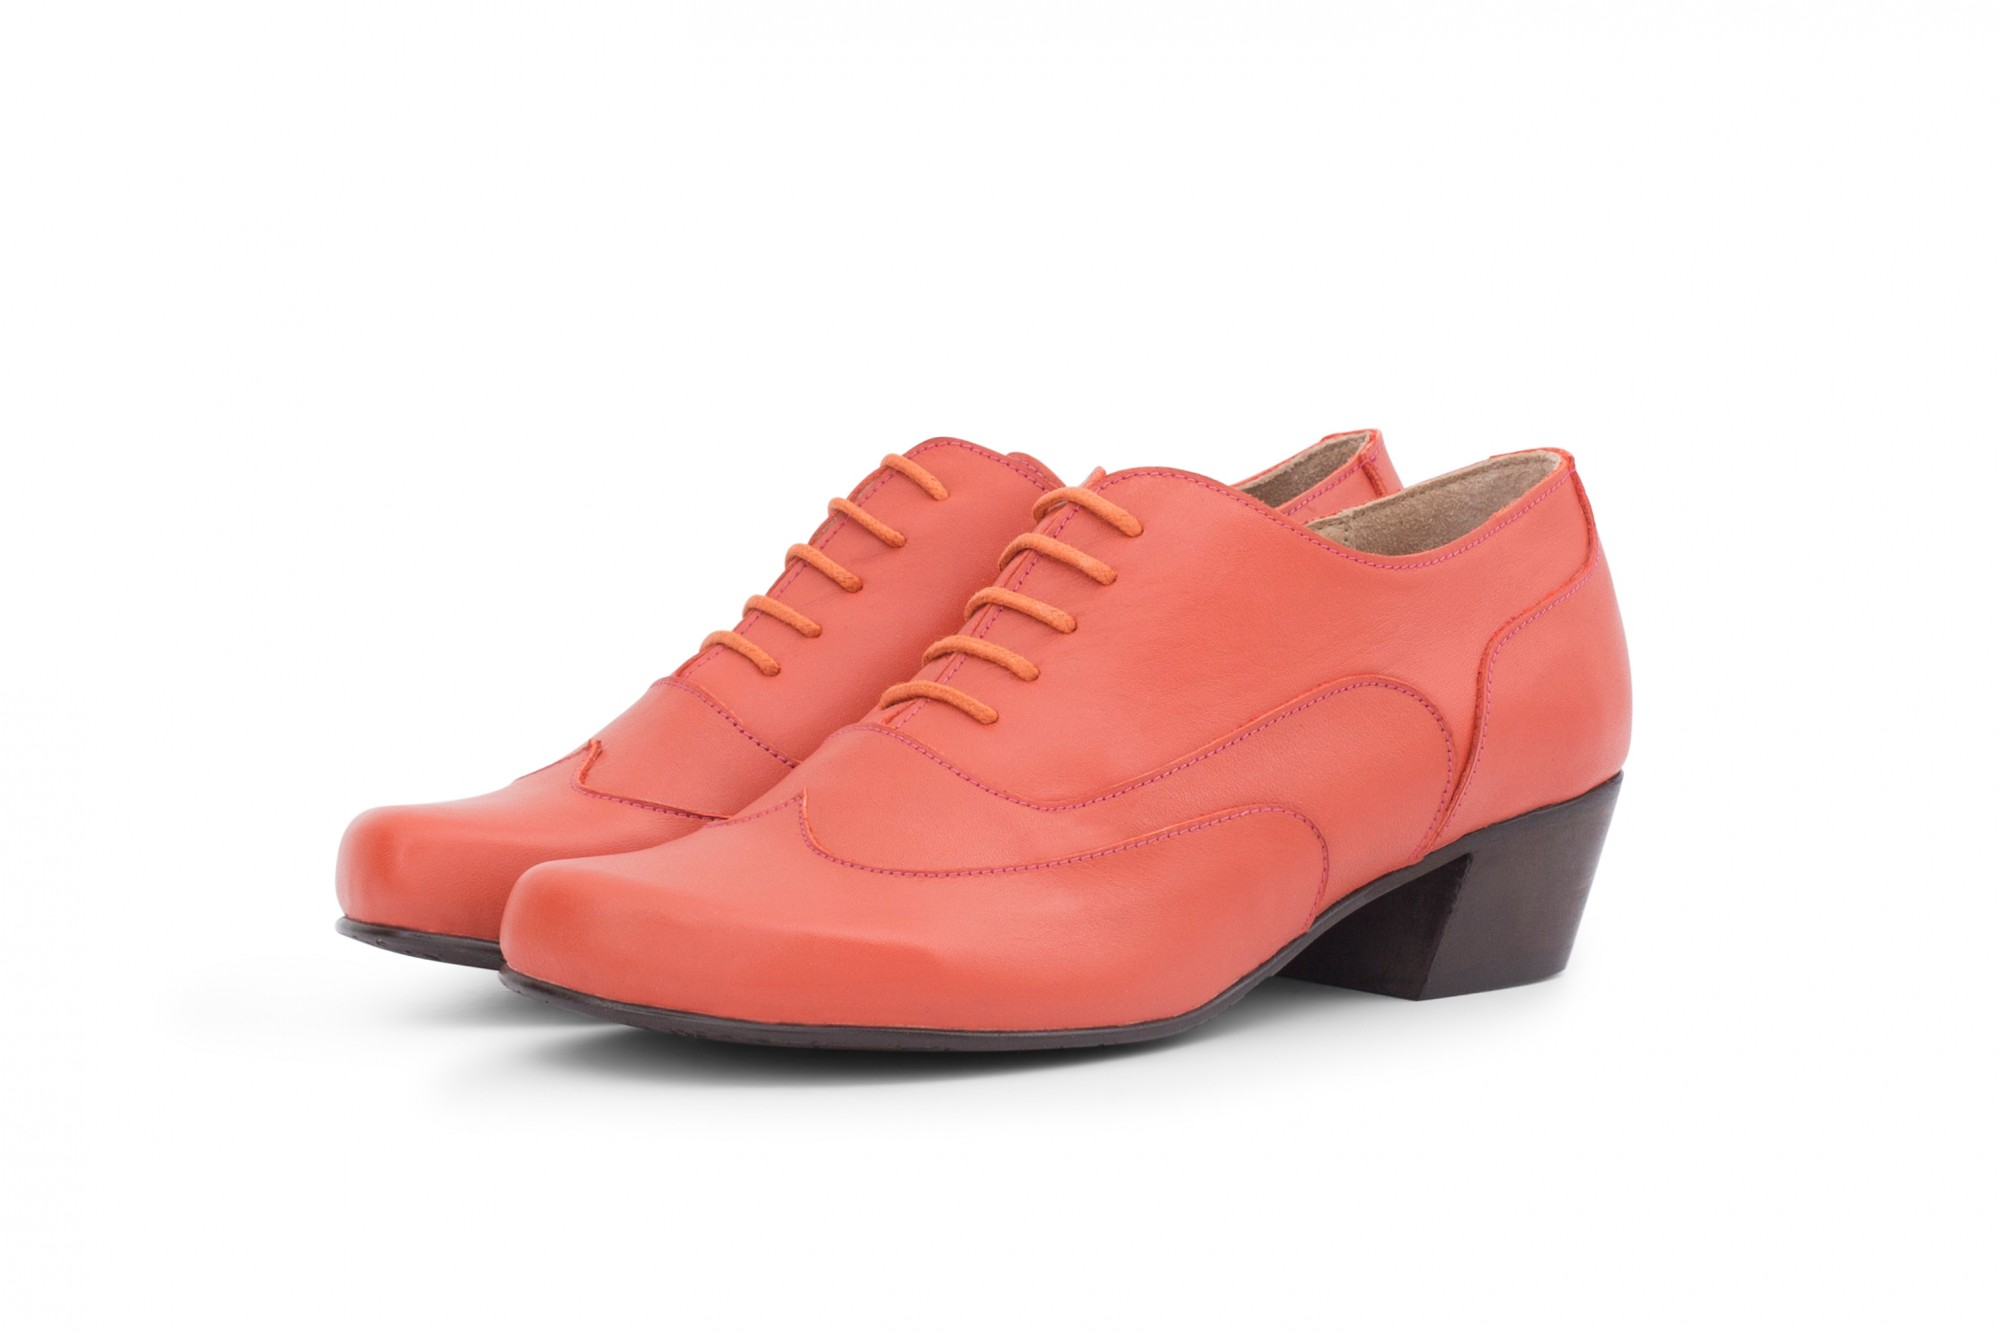 29e507d59d8 Handmade leather Shoes - Women's Leather Shoes ... - ADI KILAV